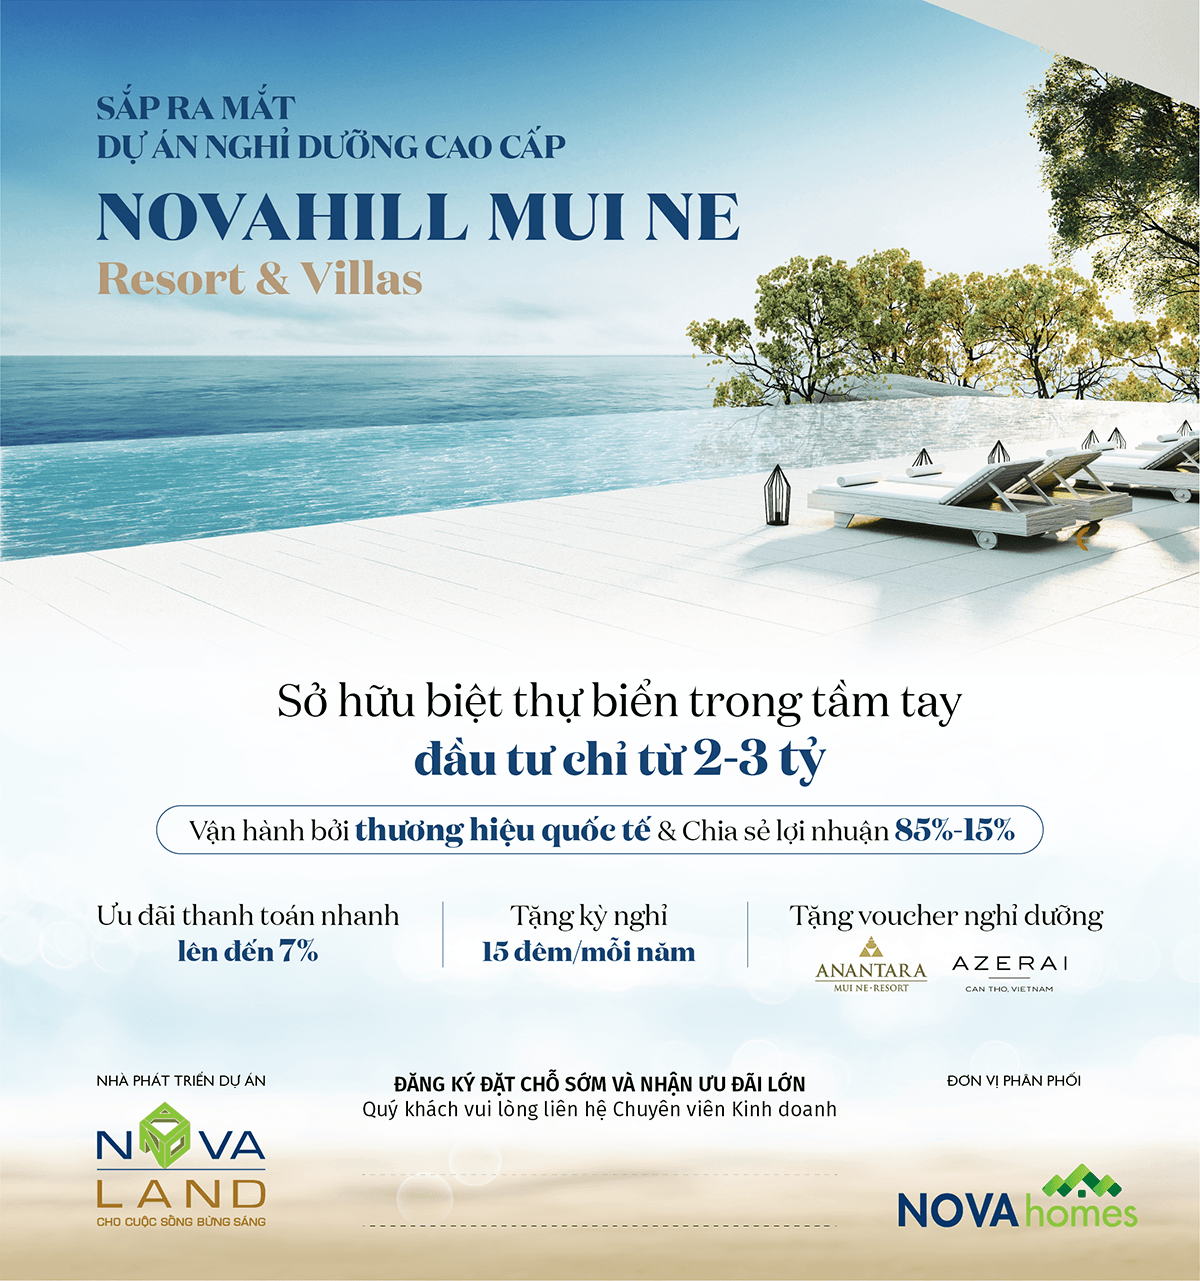 NovaHill__Mui_Ne_Resort__Villas